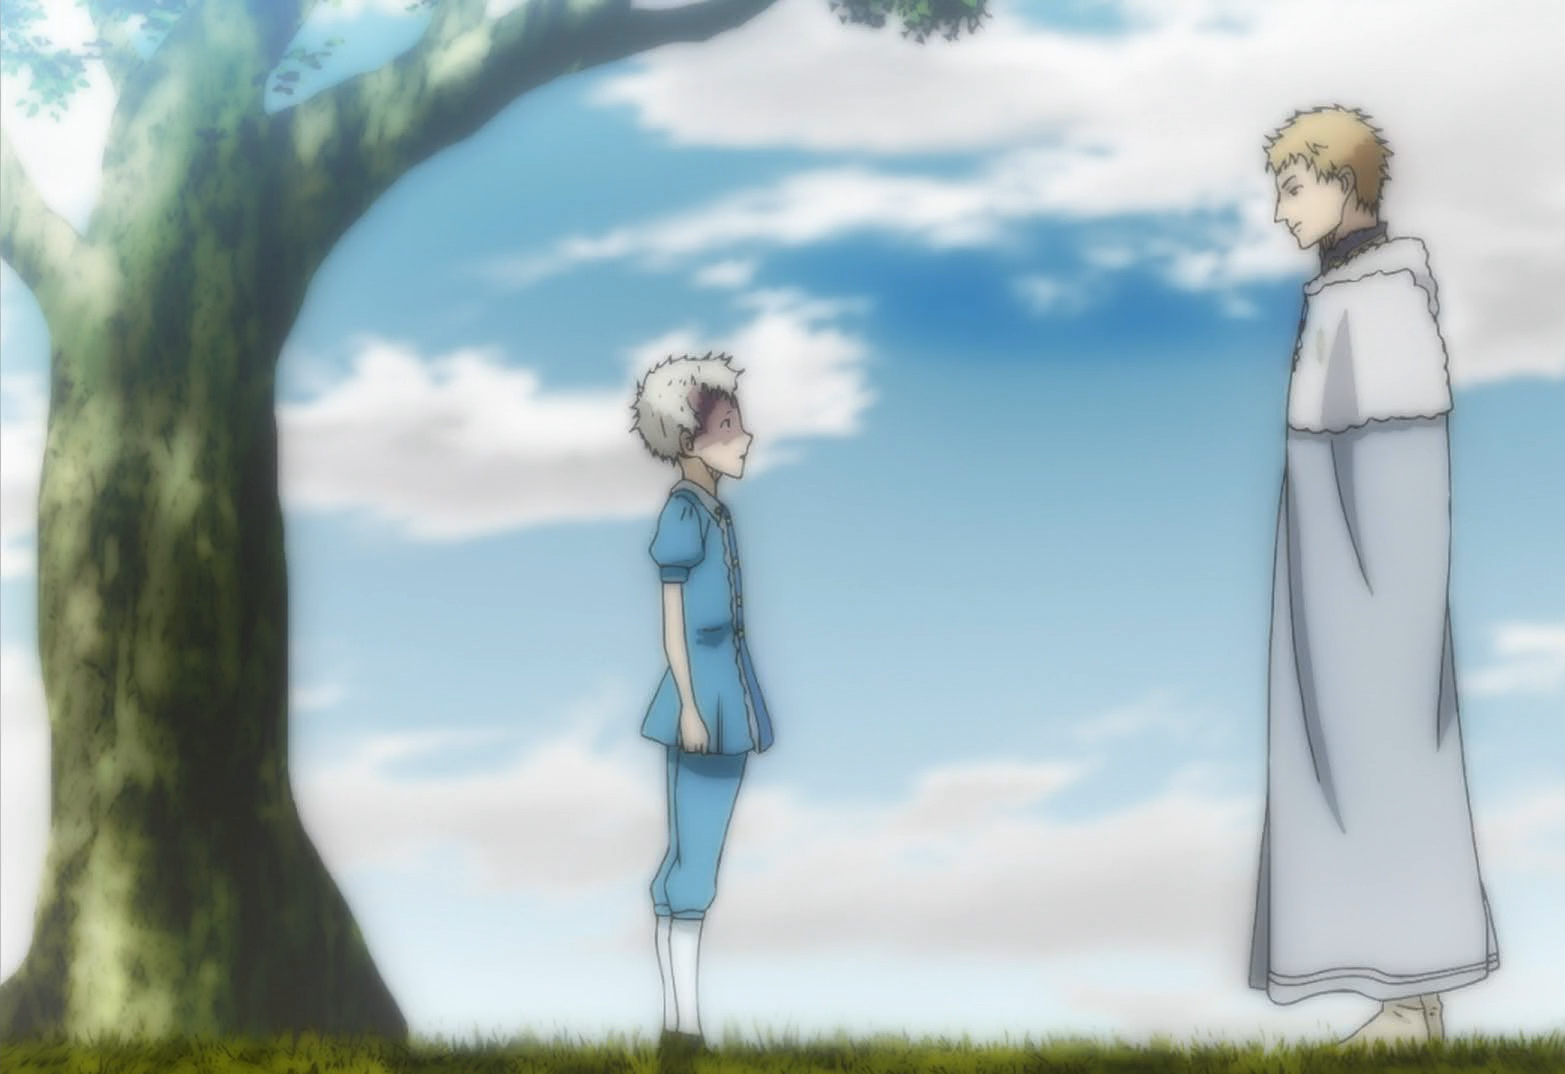 Julius Novachrono Black Clover Wiki Fandom Asta and yuno, two orphans living in the small hage village, share a dream—to become the wizard king! julius novachrono black clover wiki